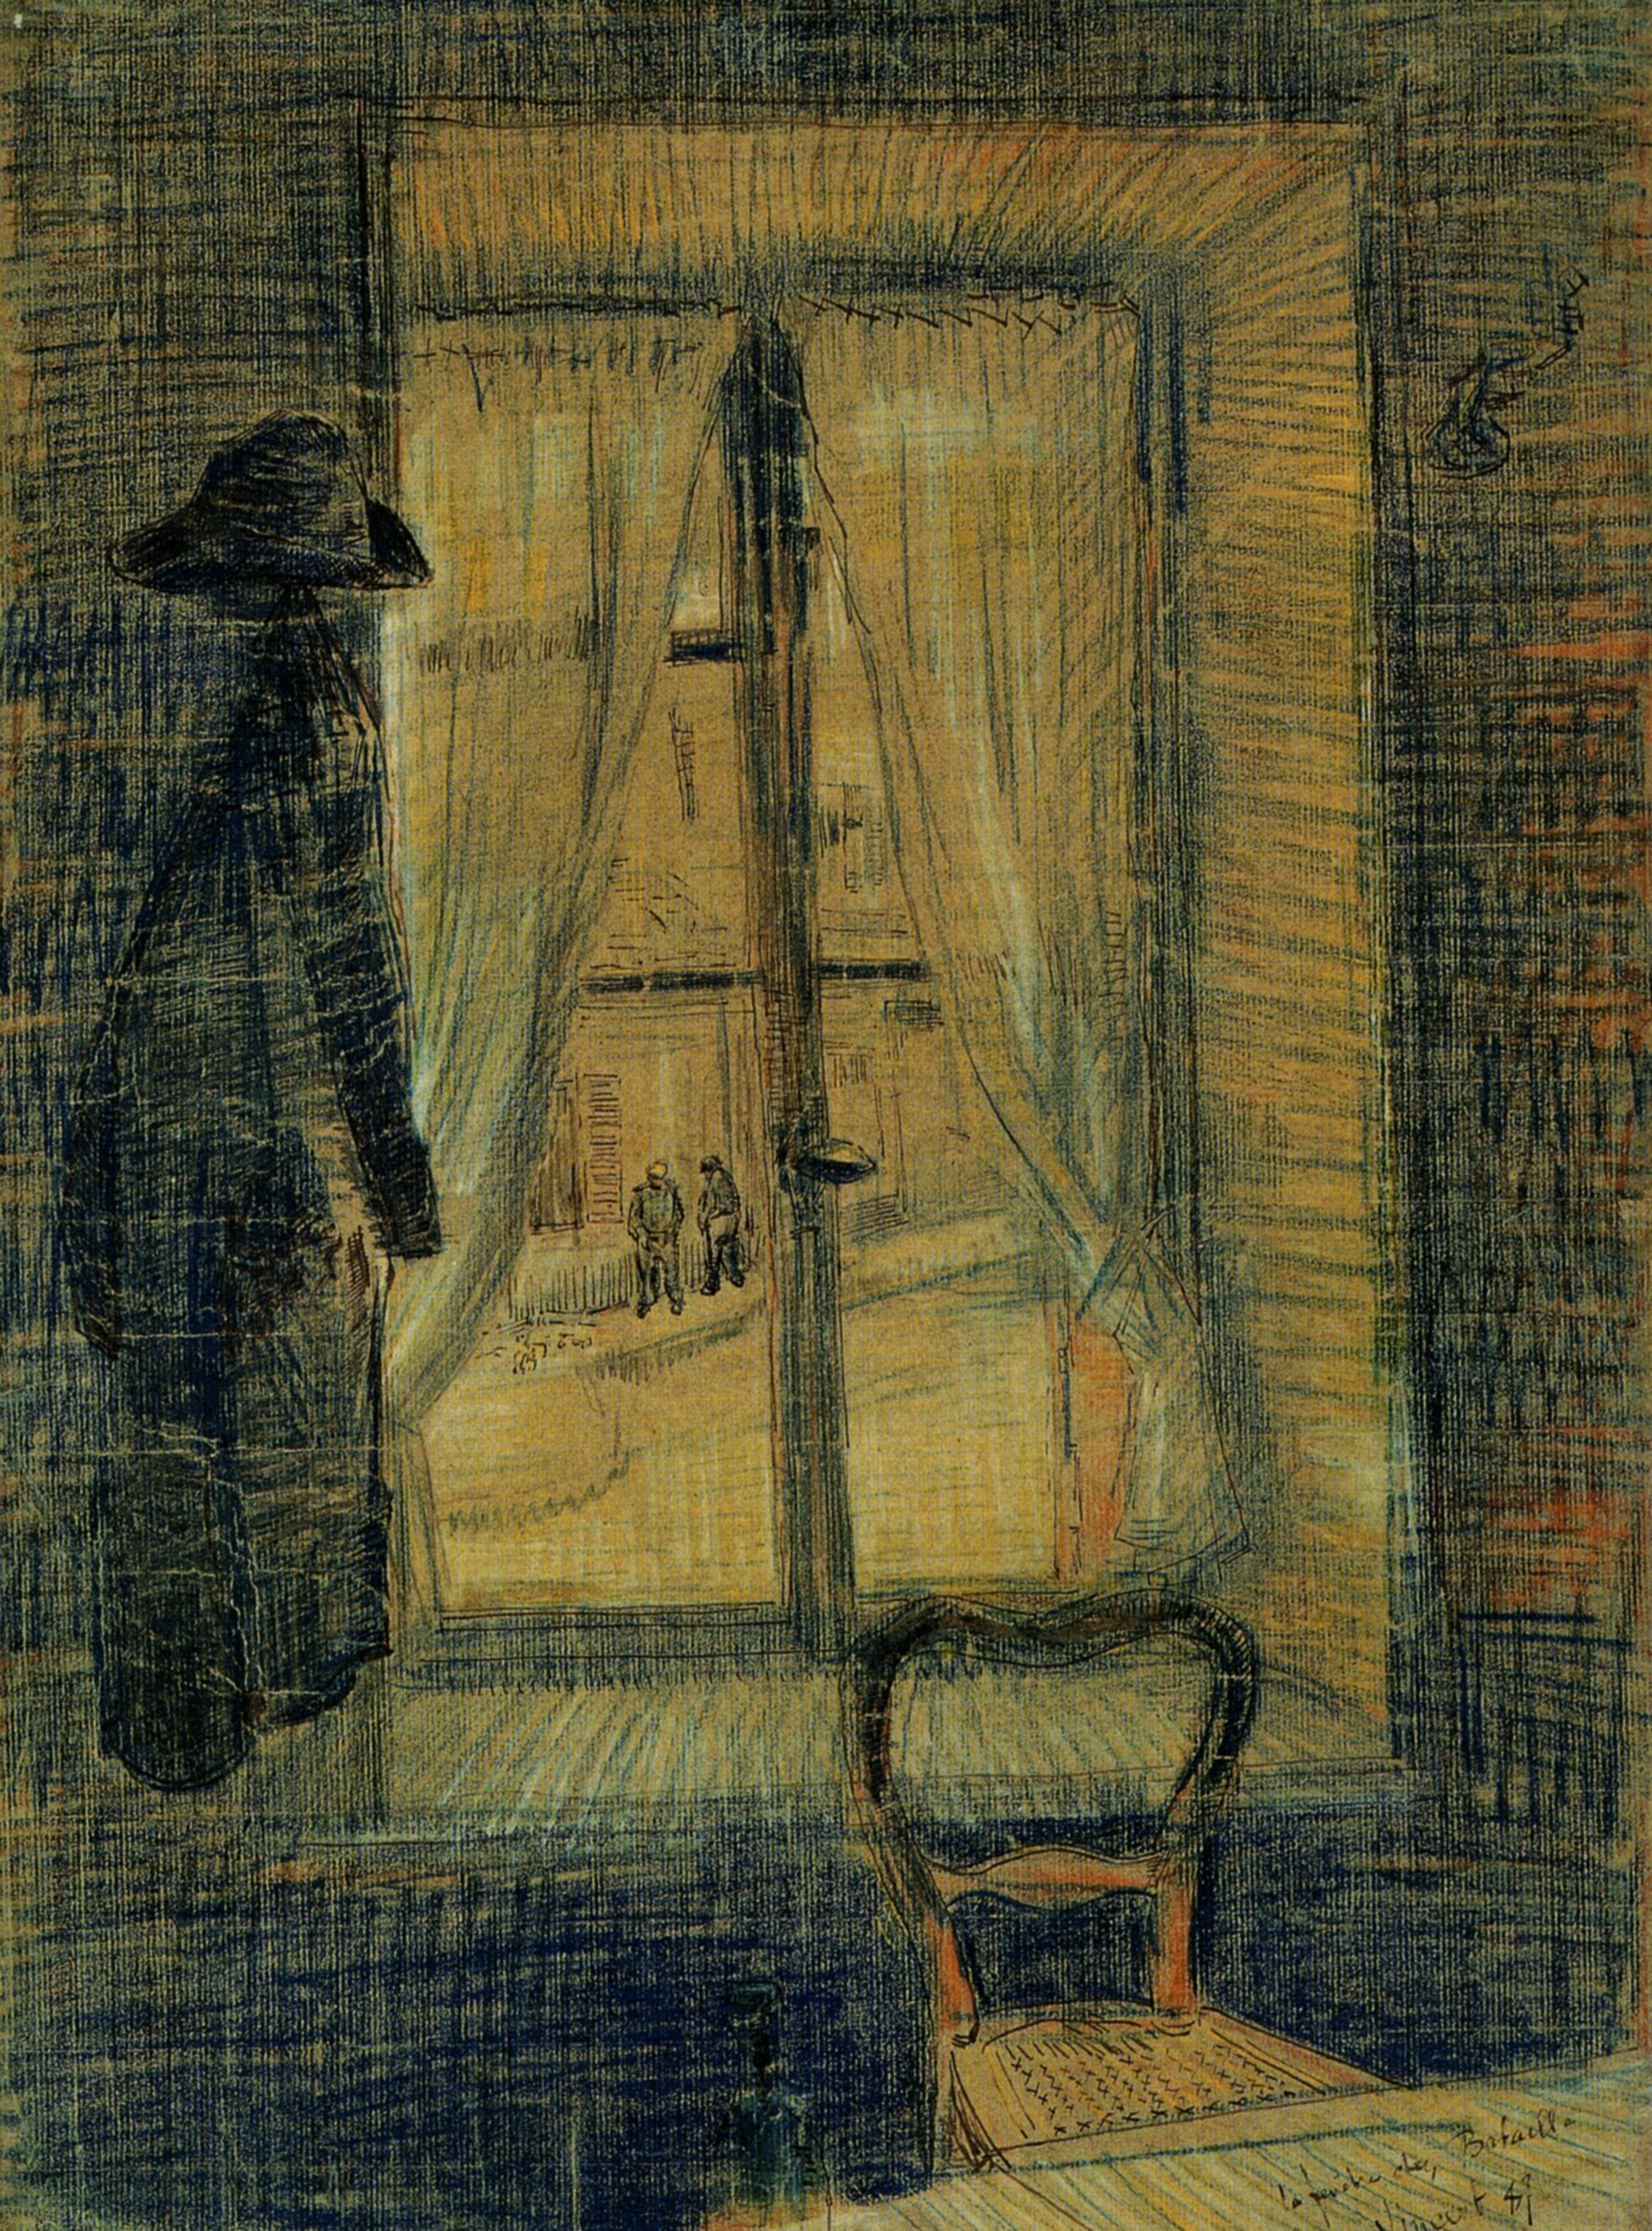 van gogh essay vincent van gogh is one of history s most famous  prometheus dismembered bataille on van gogh or the window in the the window in the bataille